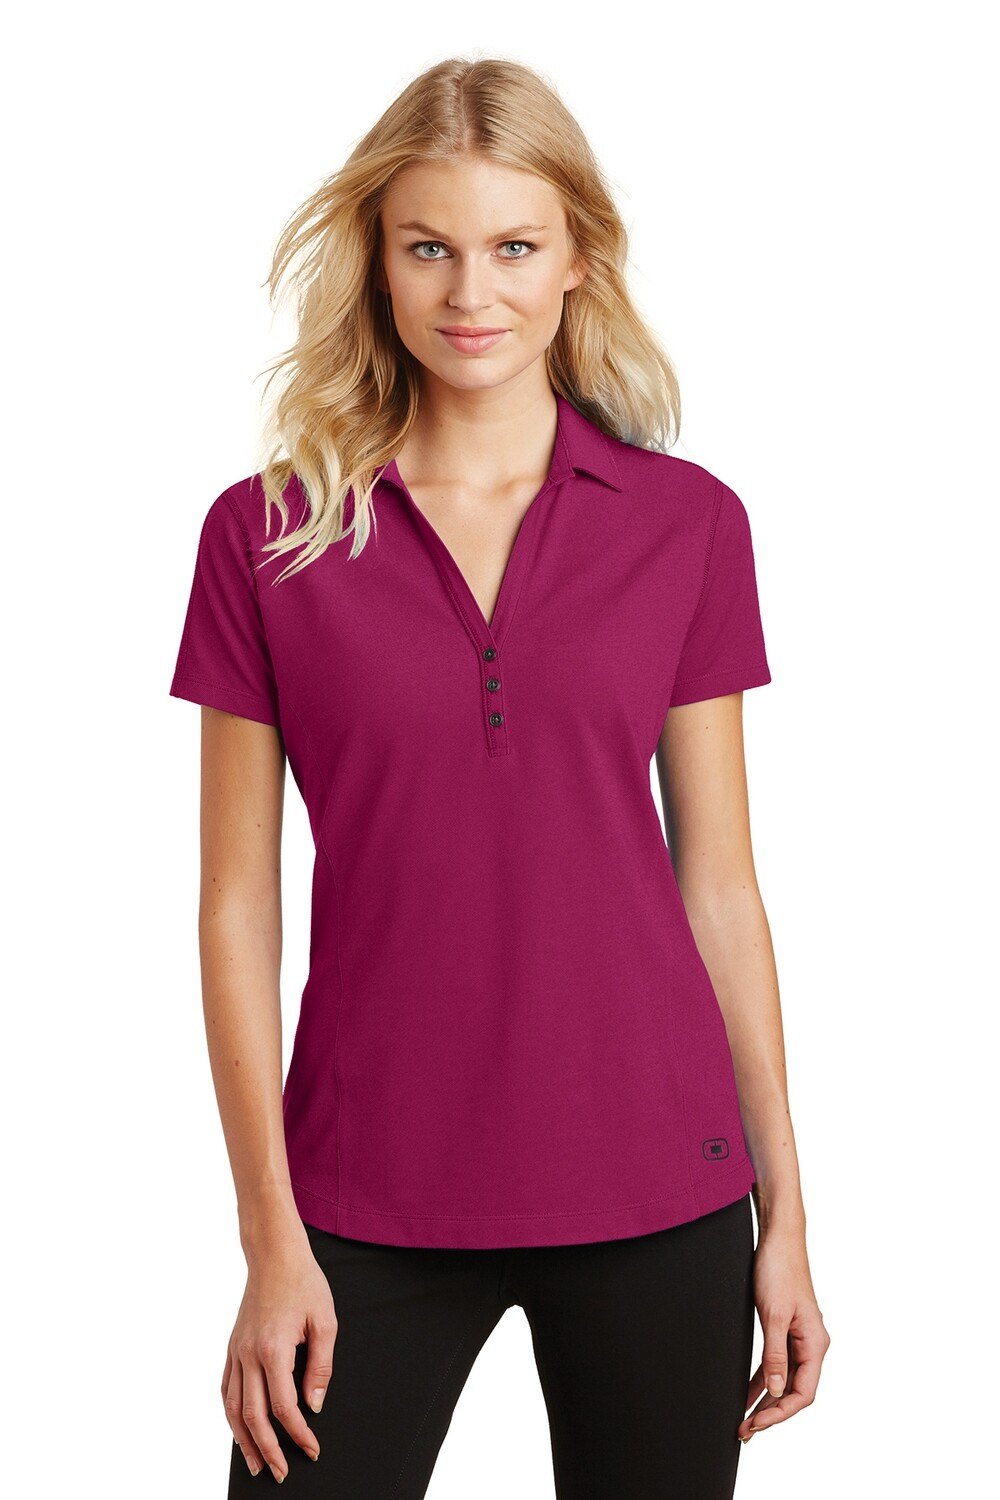 Ladies OGIO Onyx Polo